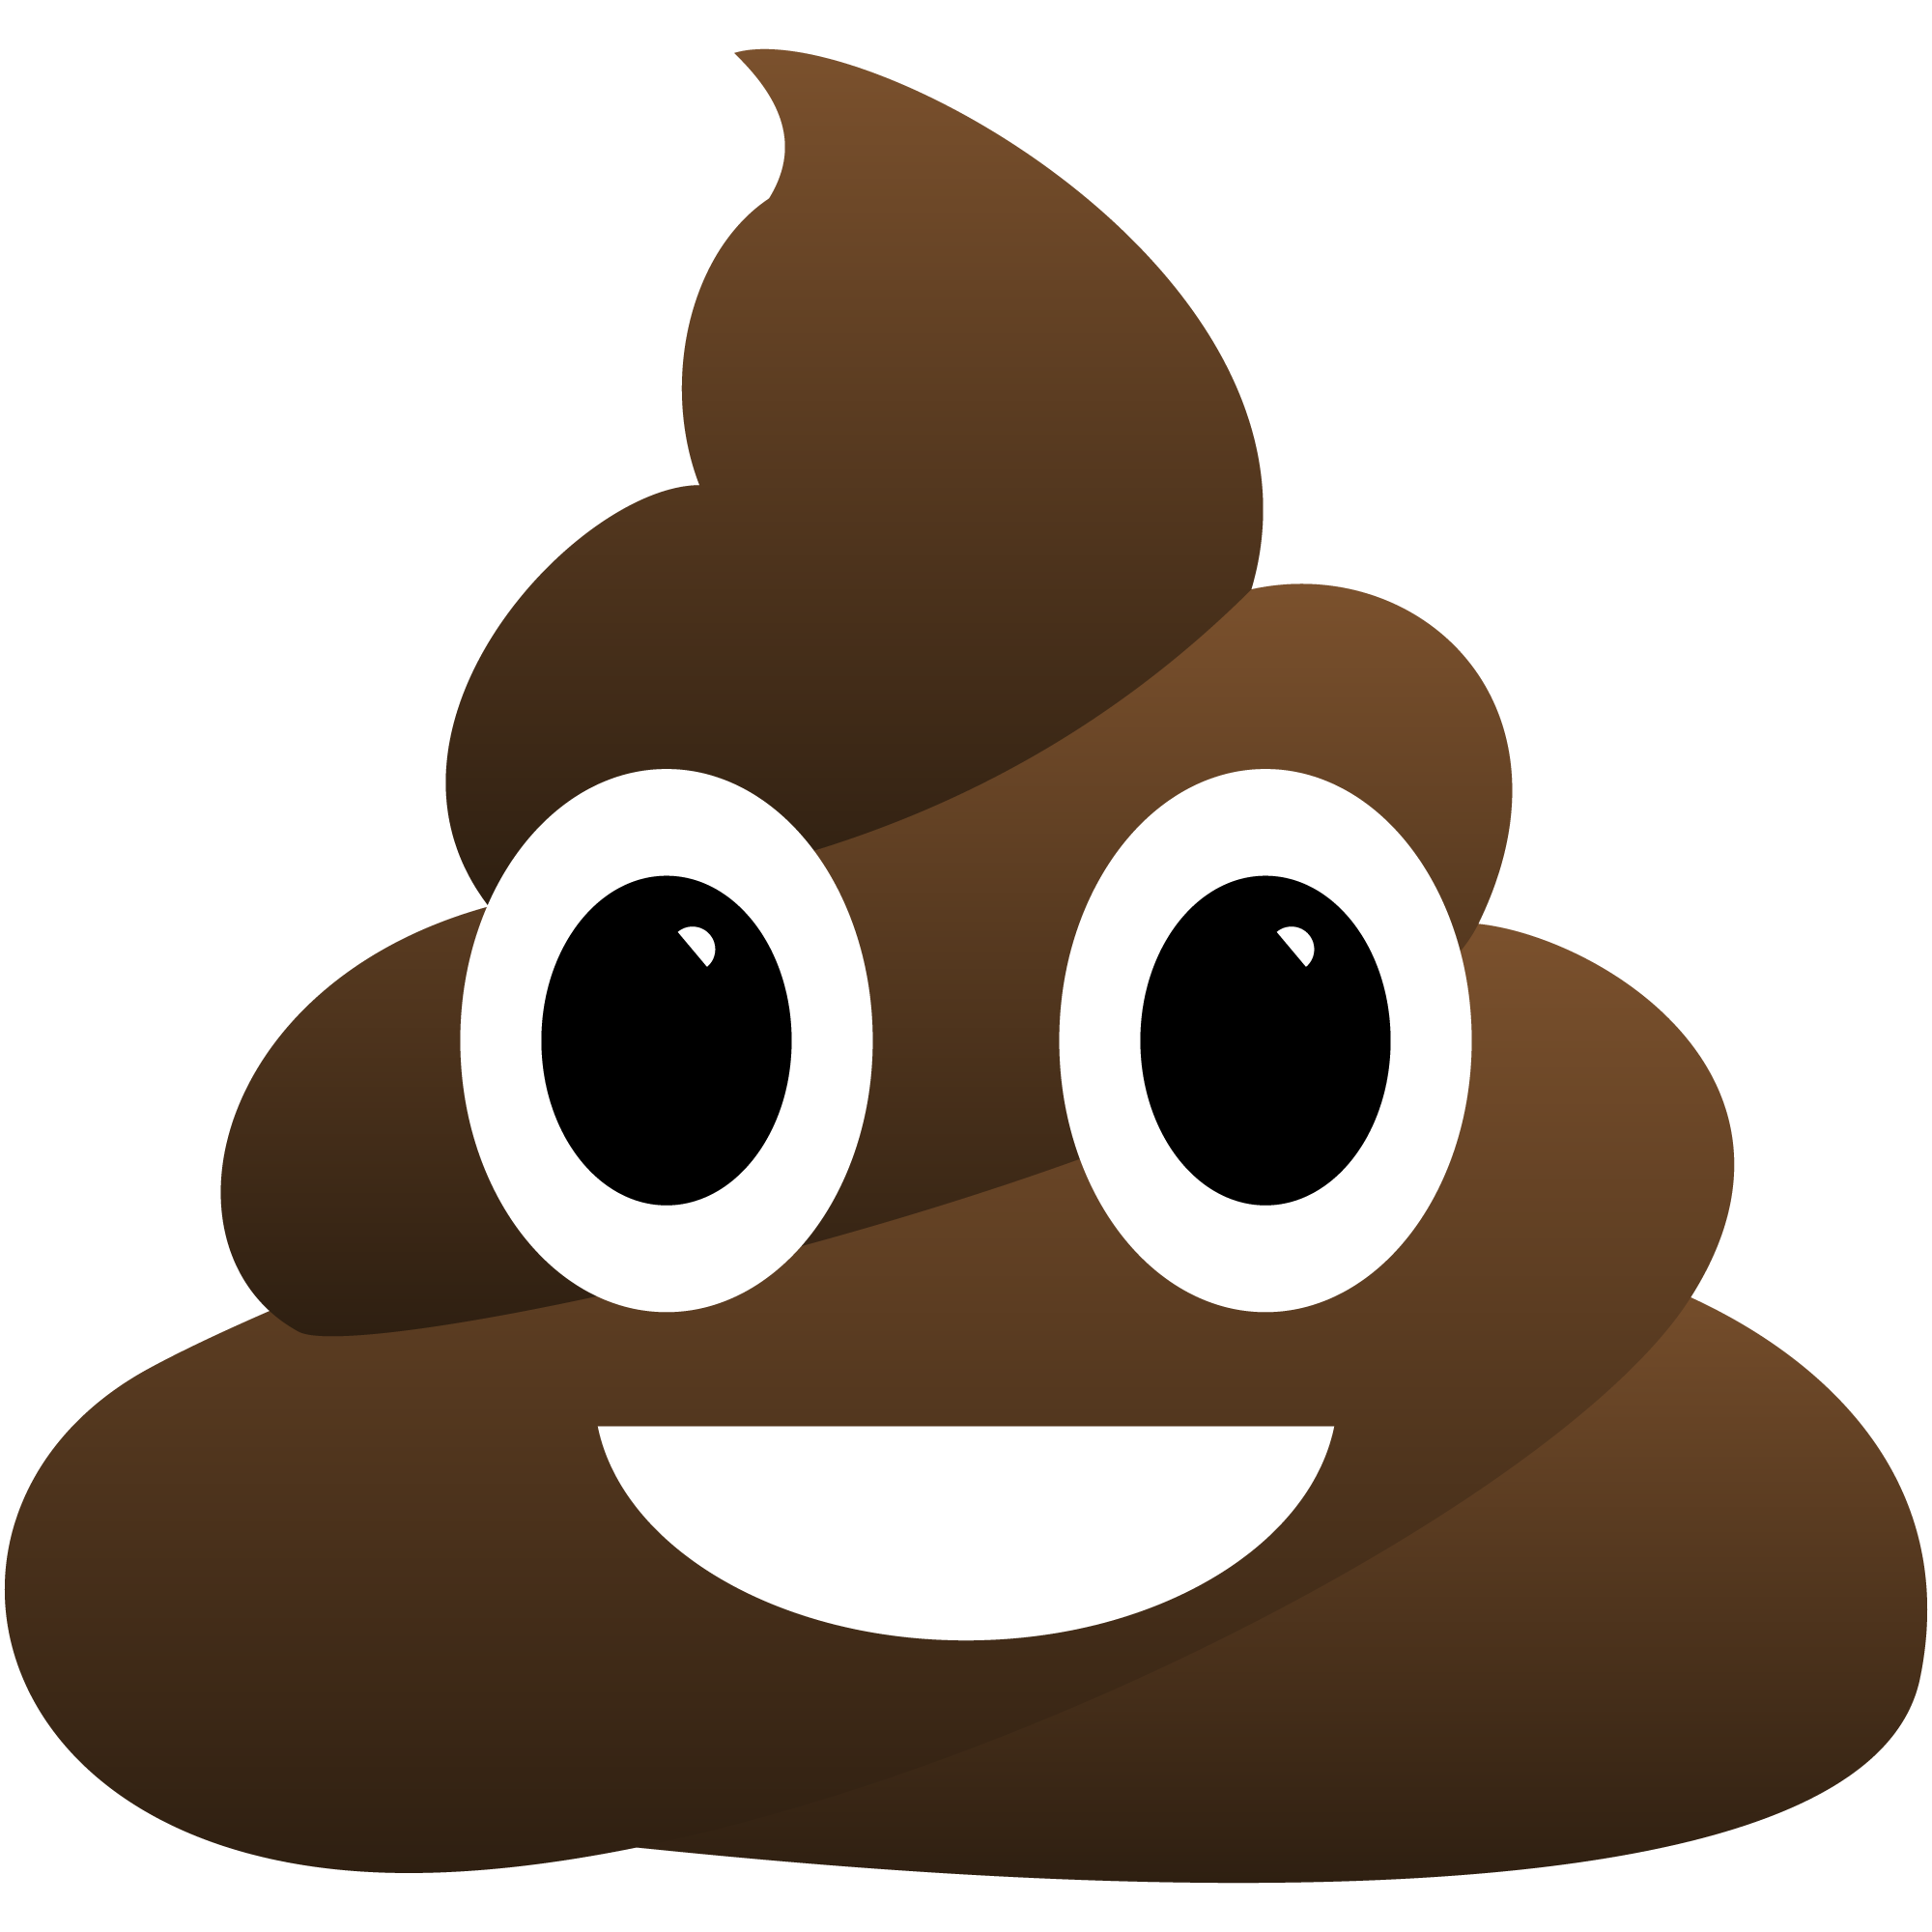 poop, emojis archives jason graham #20216